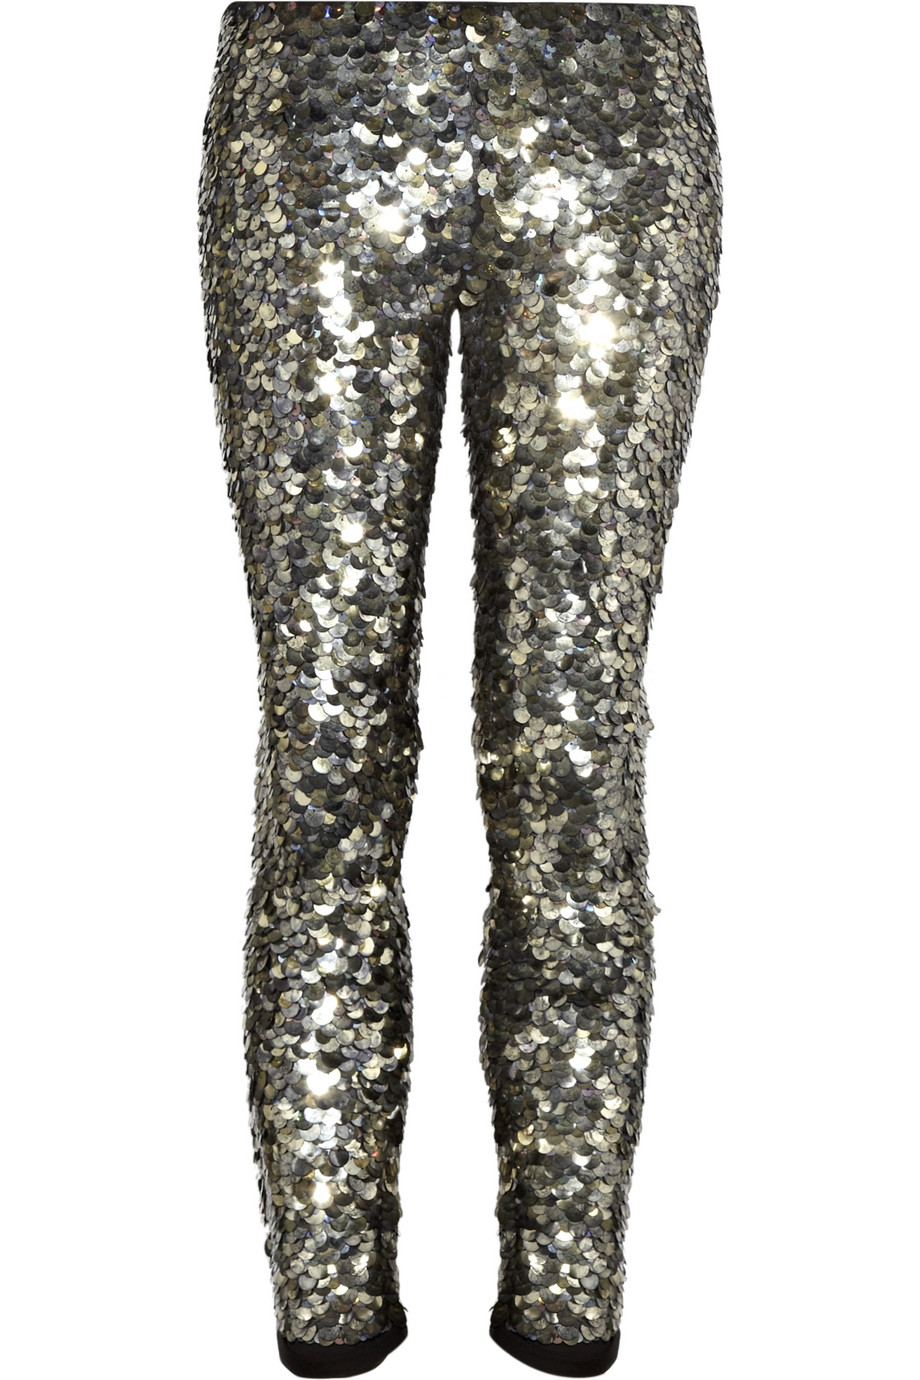 Folco sequin-embellished leggings | Isabel Marant | THE OUTNET